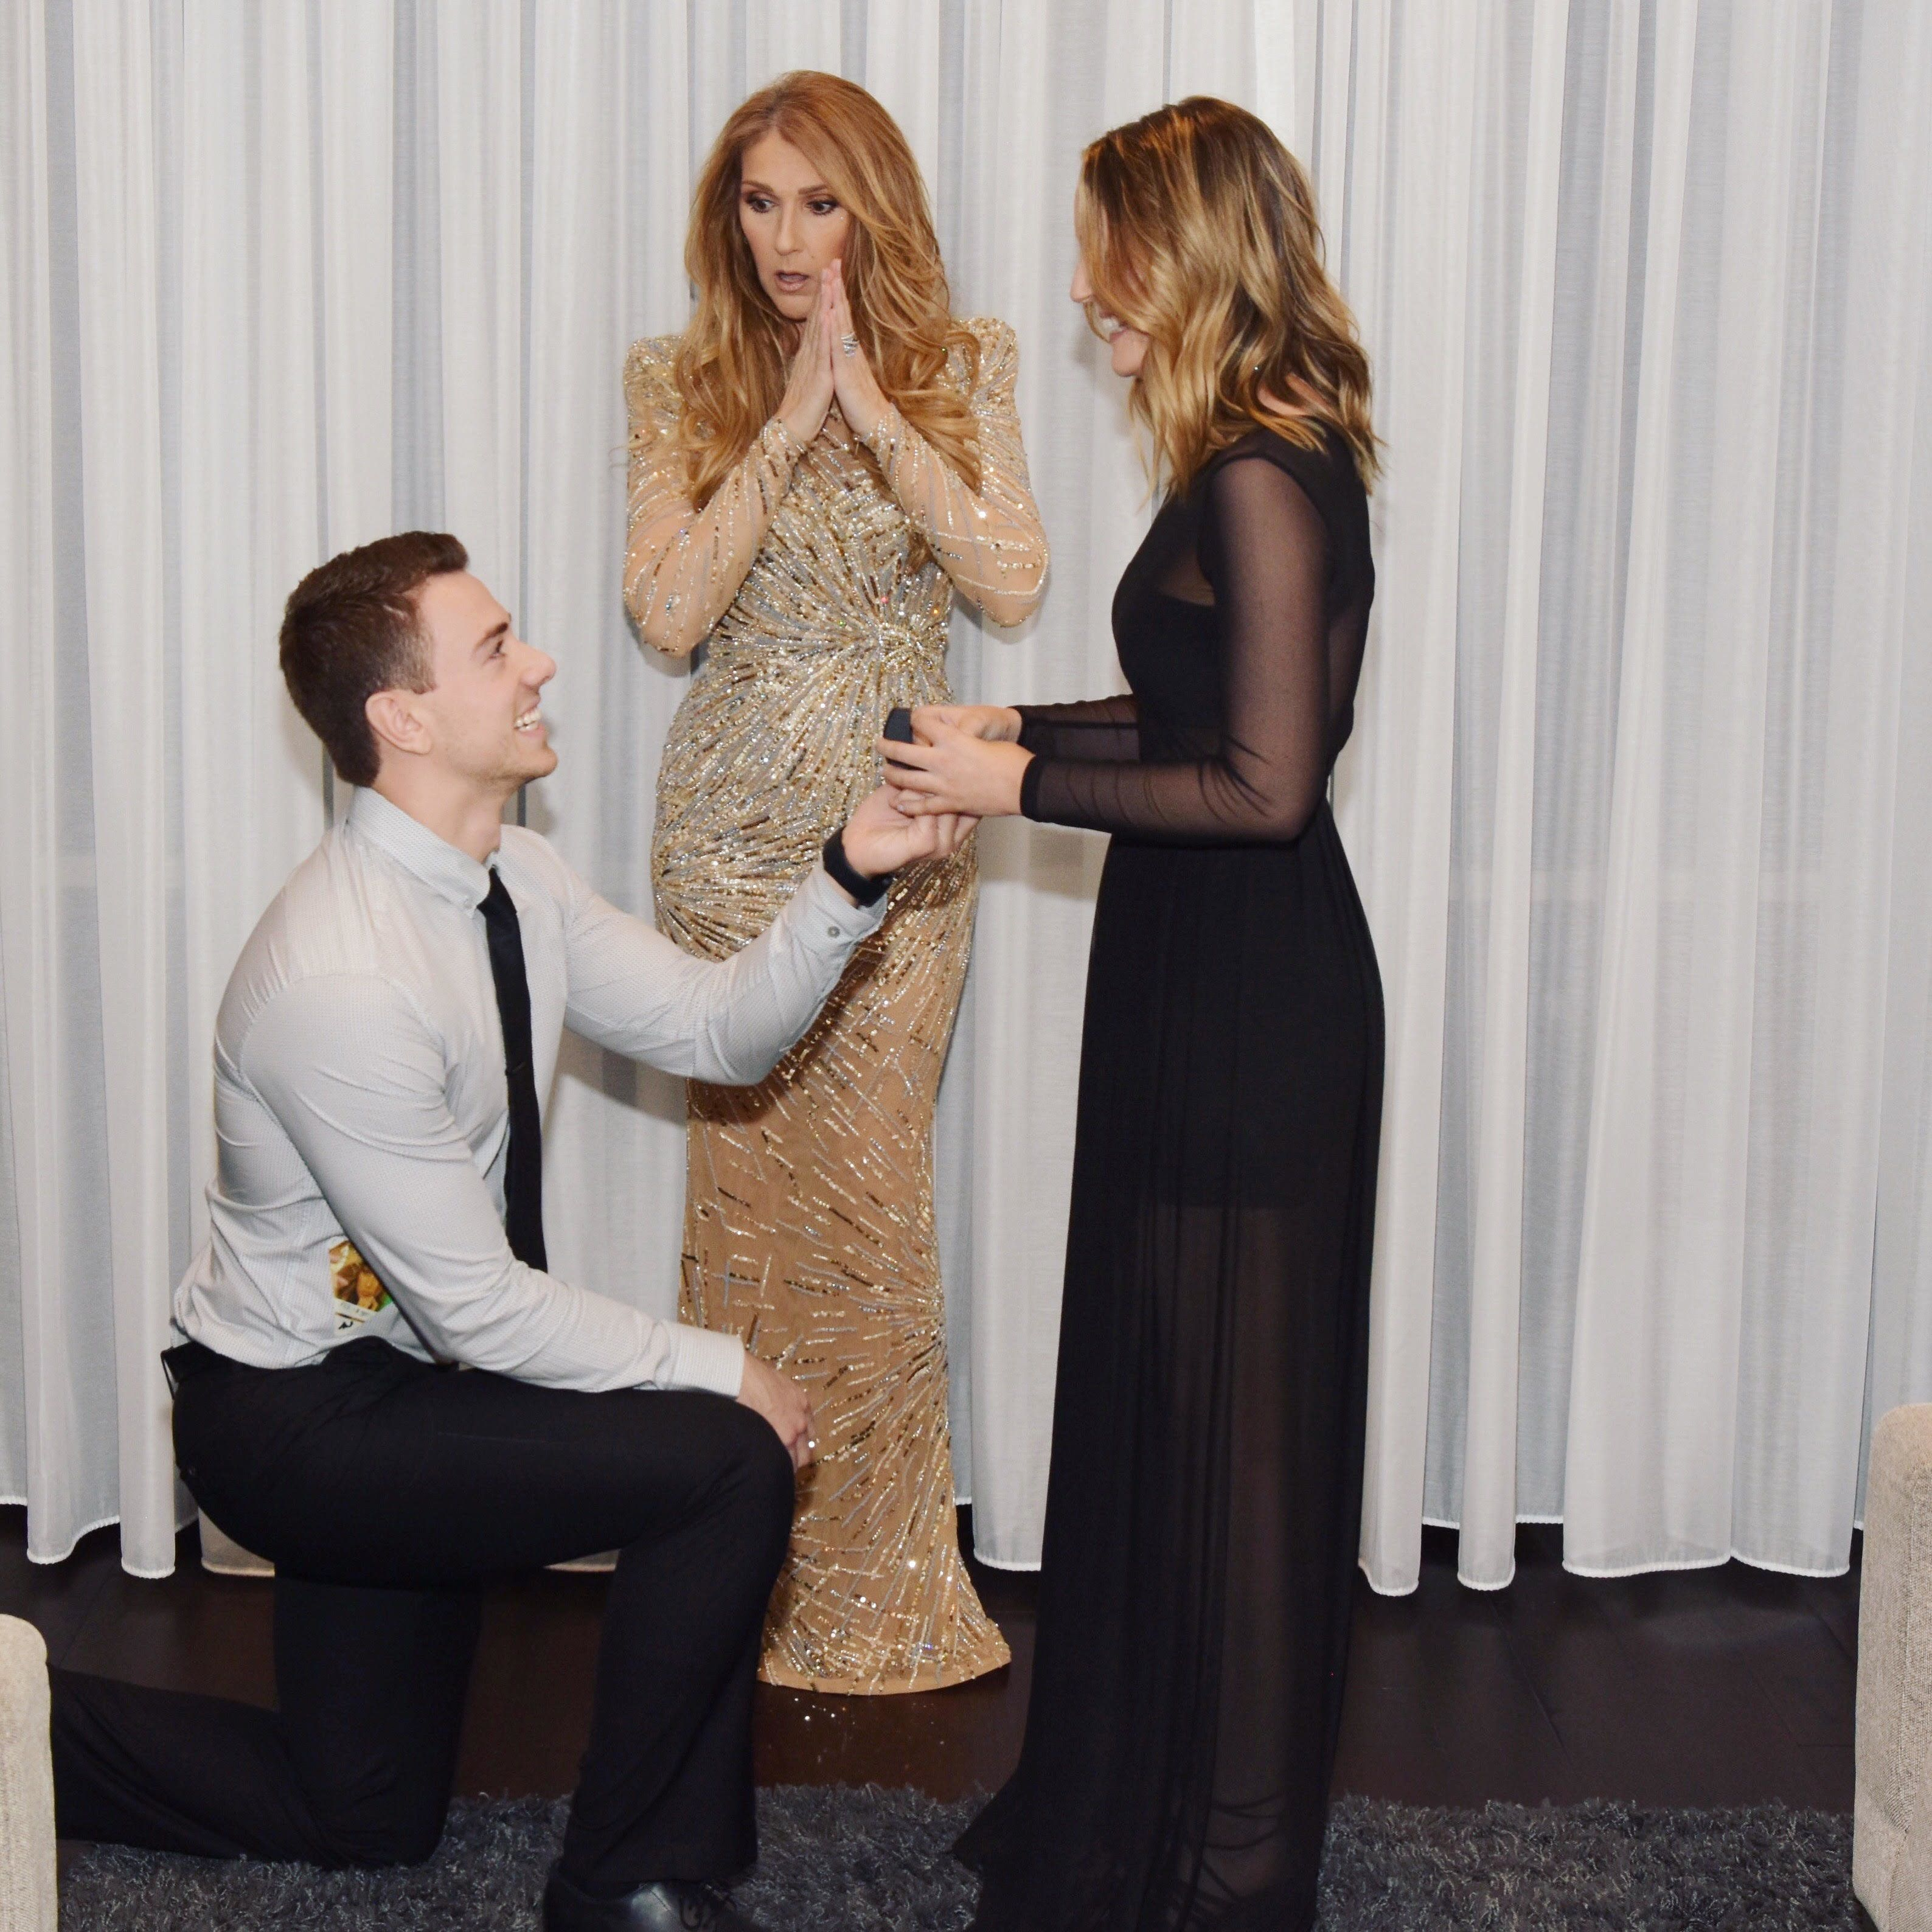 Celine Dion Had The Best Reaction To One Of Her Fans